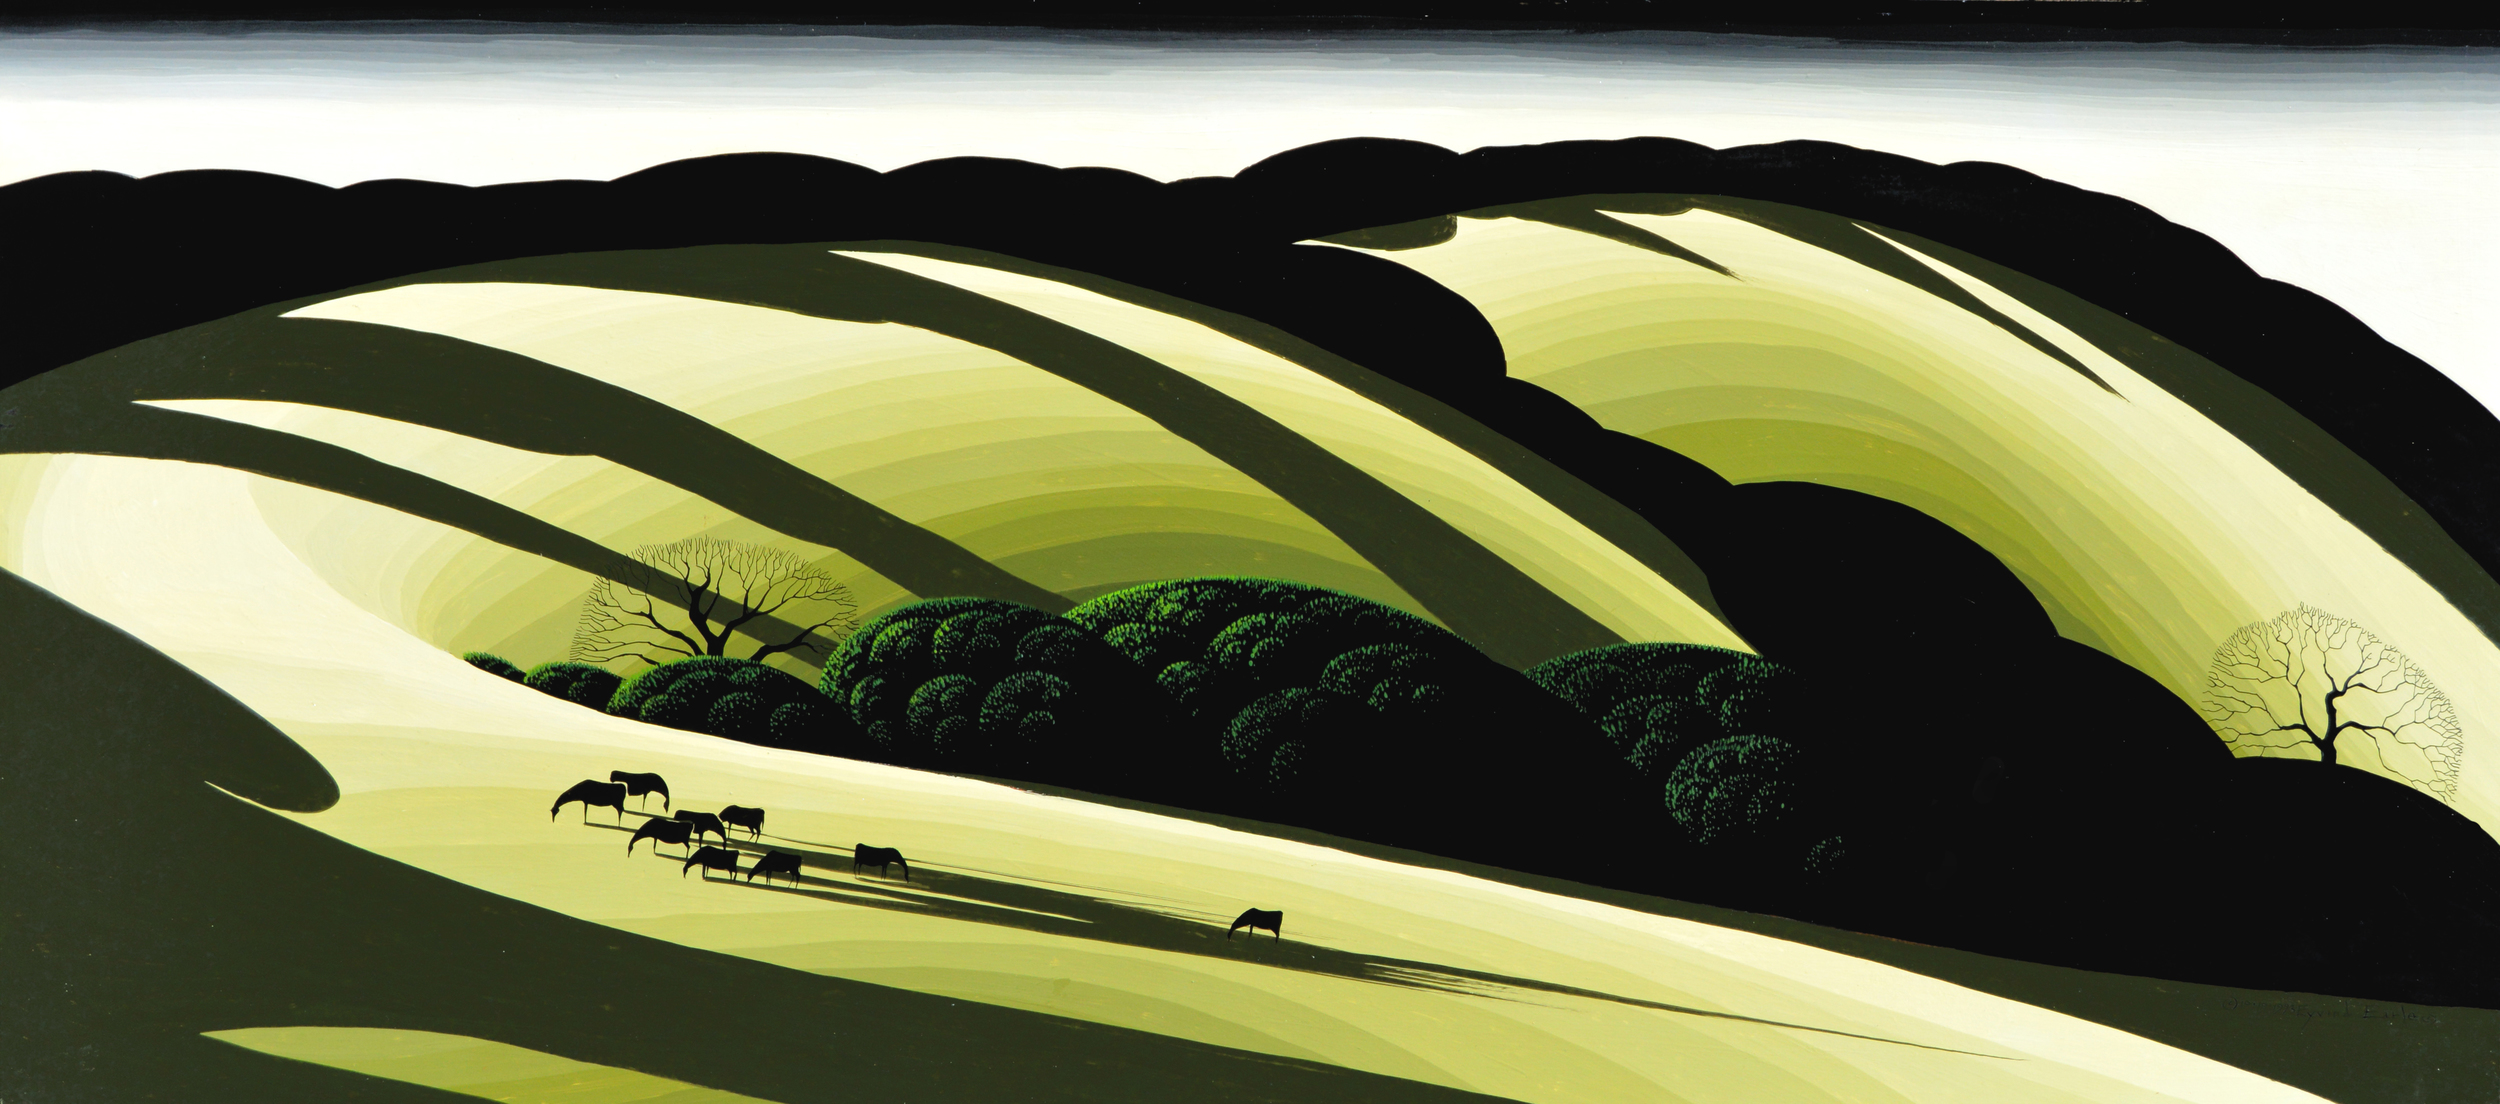 THE SHADOWS DEEPEN Eyvind Earle